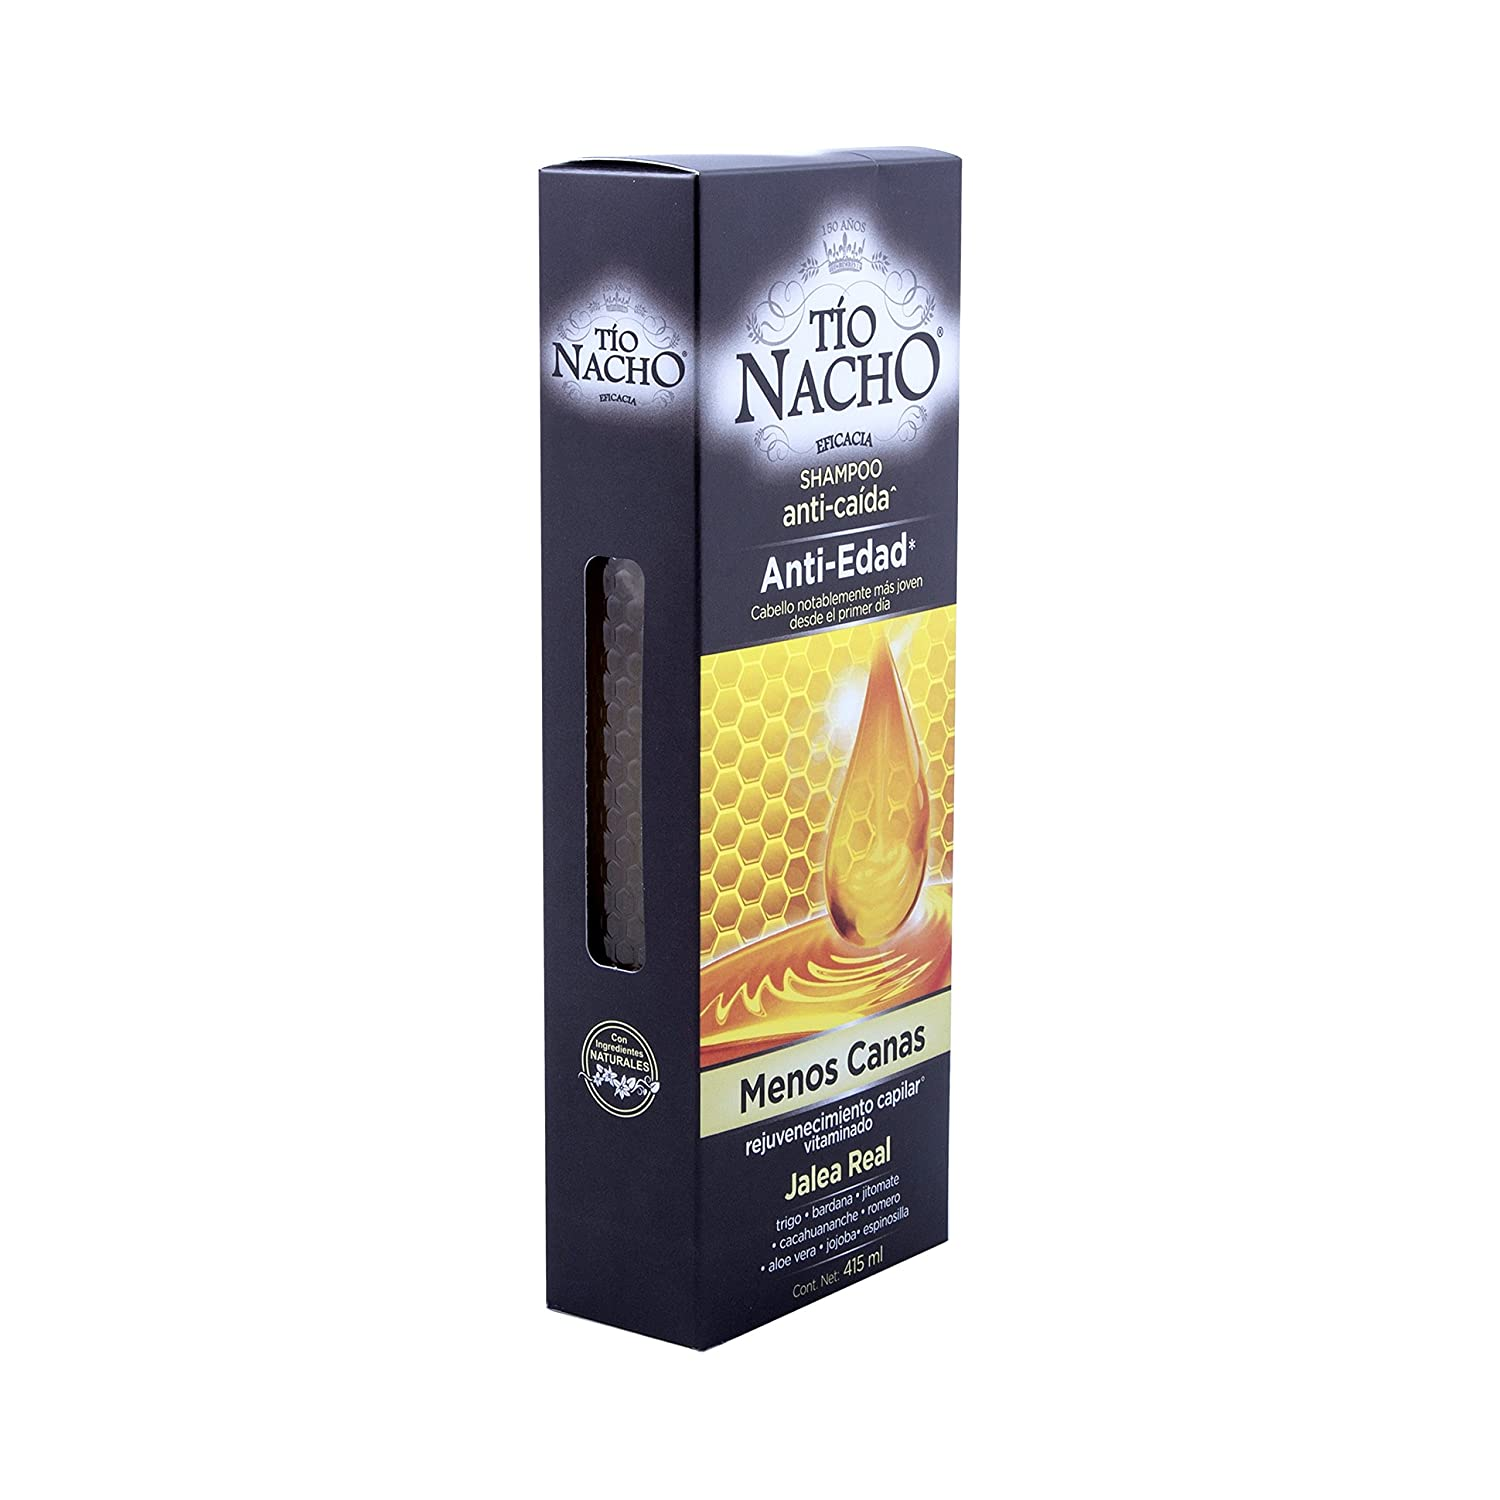 Amazon.com : Tio Nacho Shampoo Anti-edad : Hair Regrowth Shampoos : Beauty